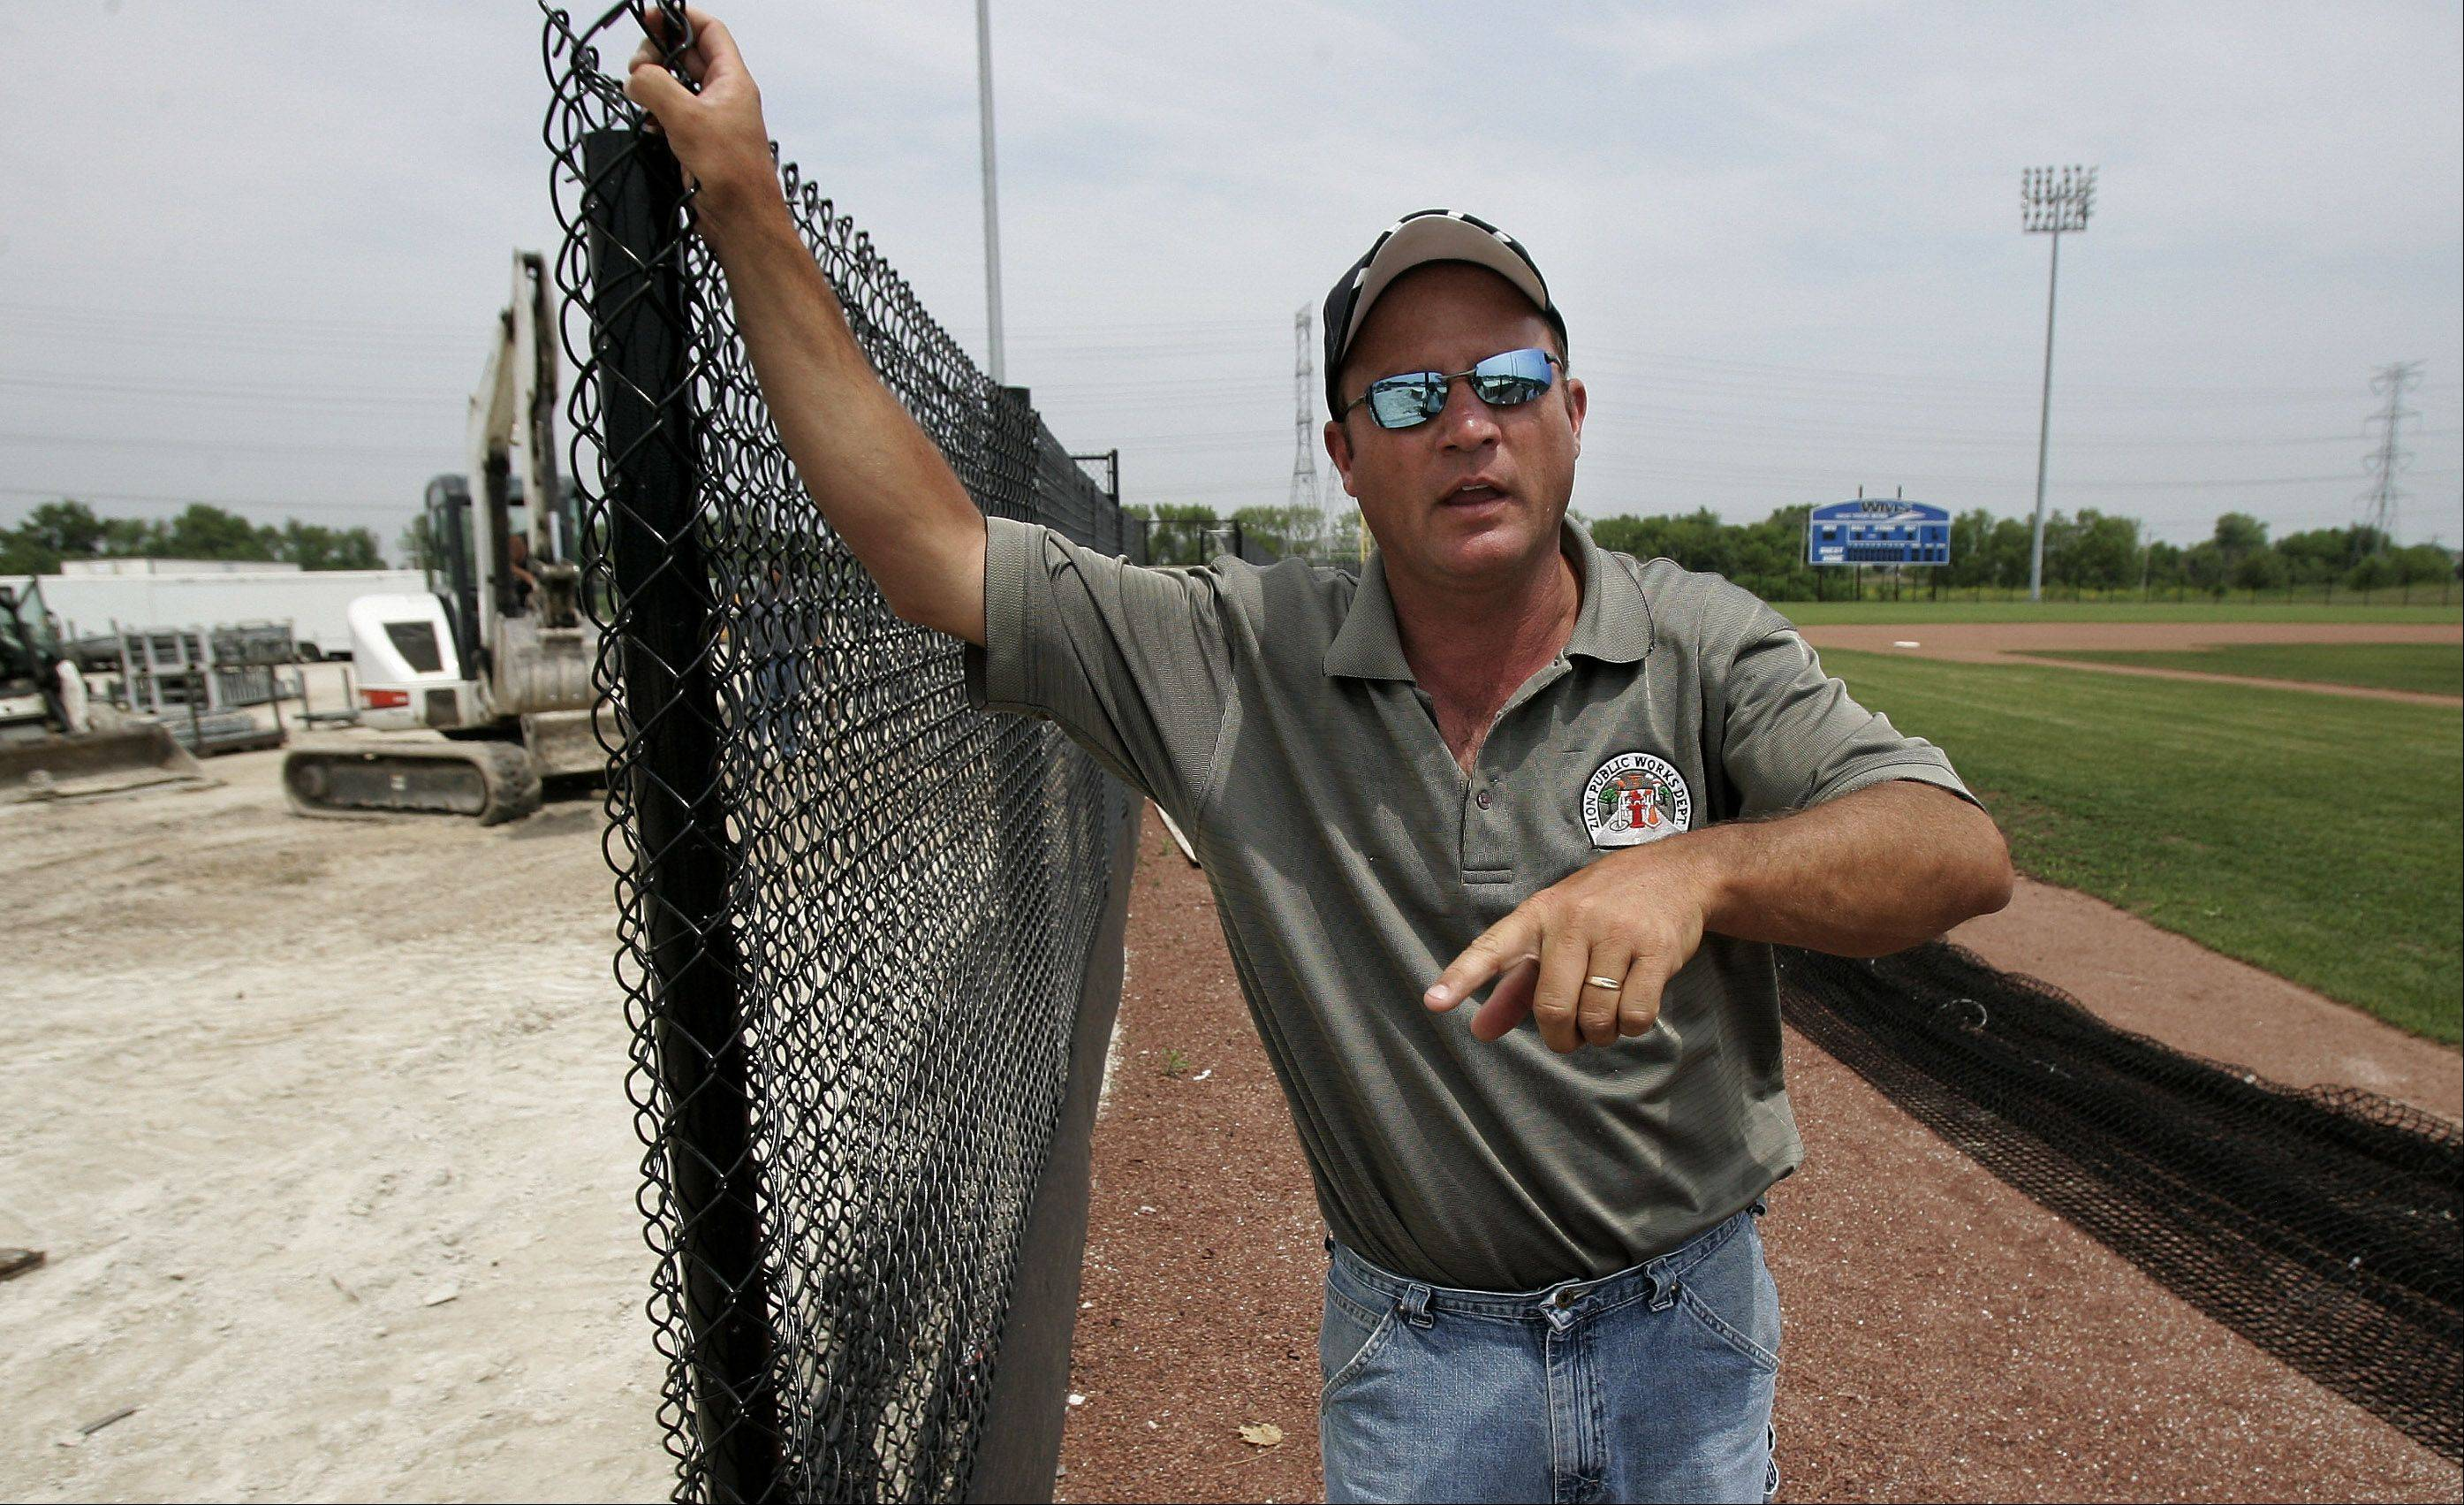 Ron Colangelo, director of Zion's Public Works and Engineering Department, is helping get the Lake County Fielders' home park ready for a July 3 opening.